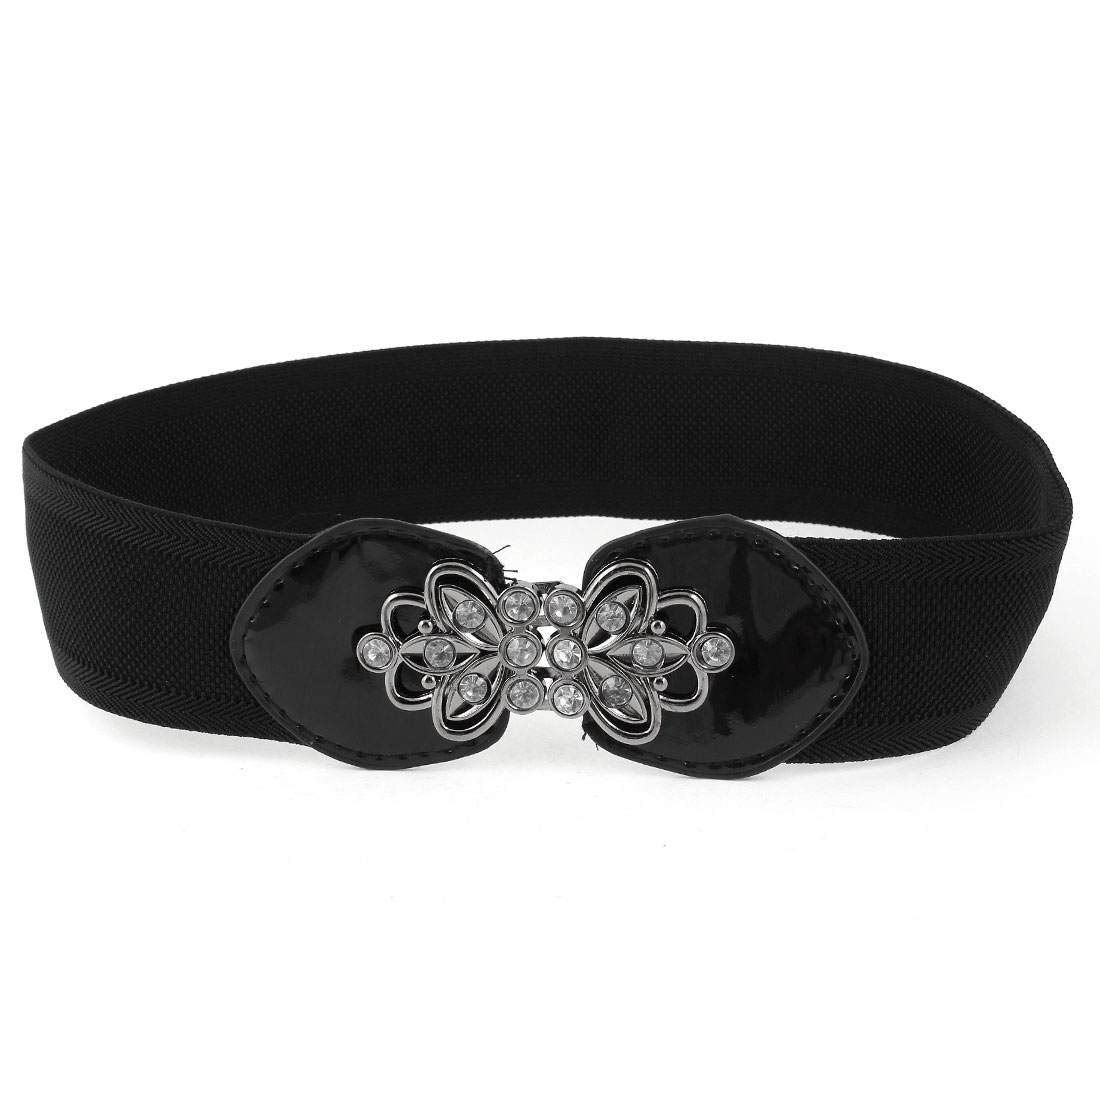 Faux Crystal Inlaid Interlocking Buckle Cinch Waist Belt Black for Woman Ladies